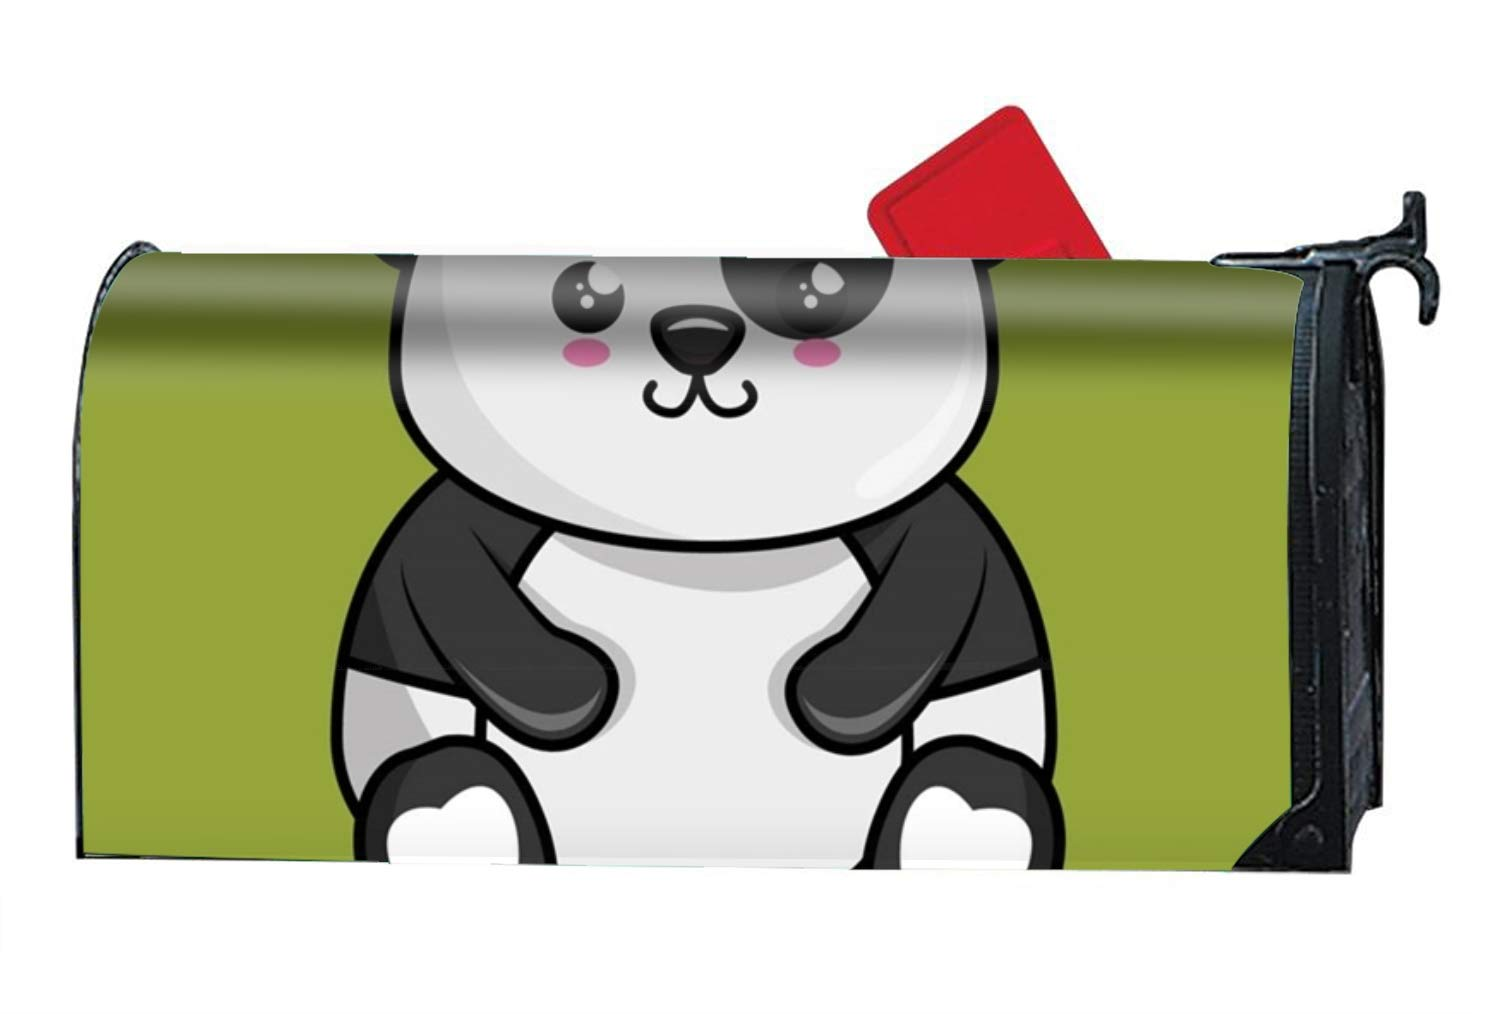 MAYS Cute Panda Character Kawaii Style Magnetic Mailbox Cover - Fairy Garden Accessories